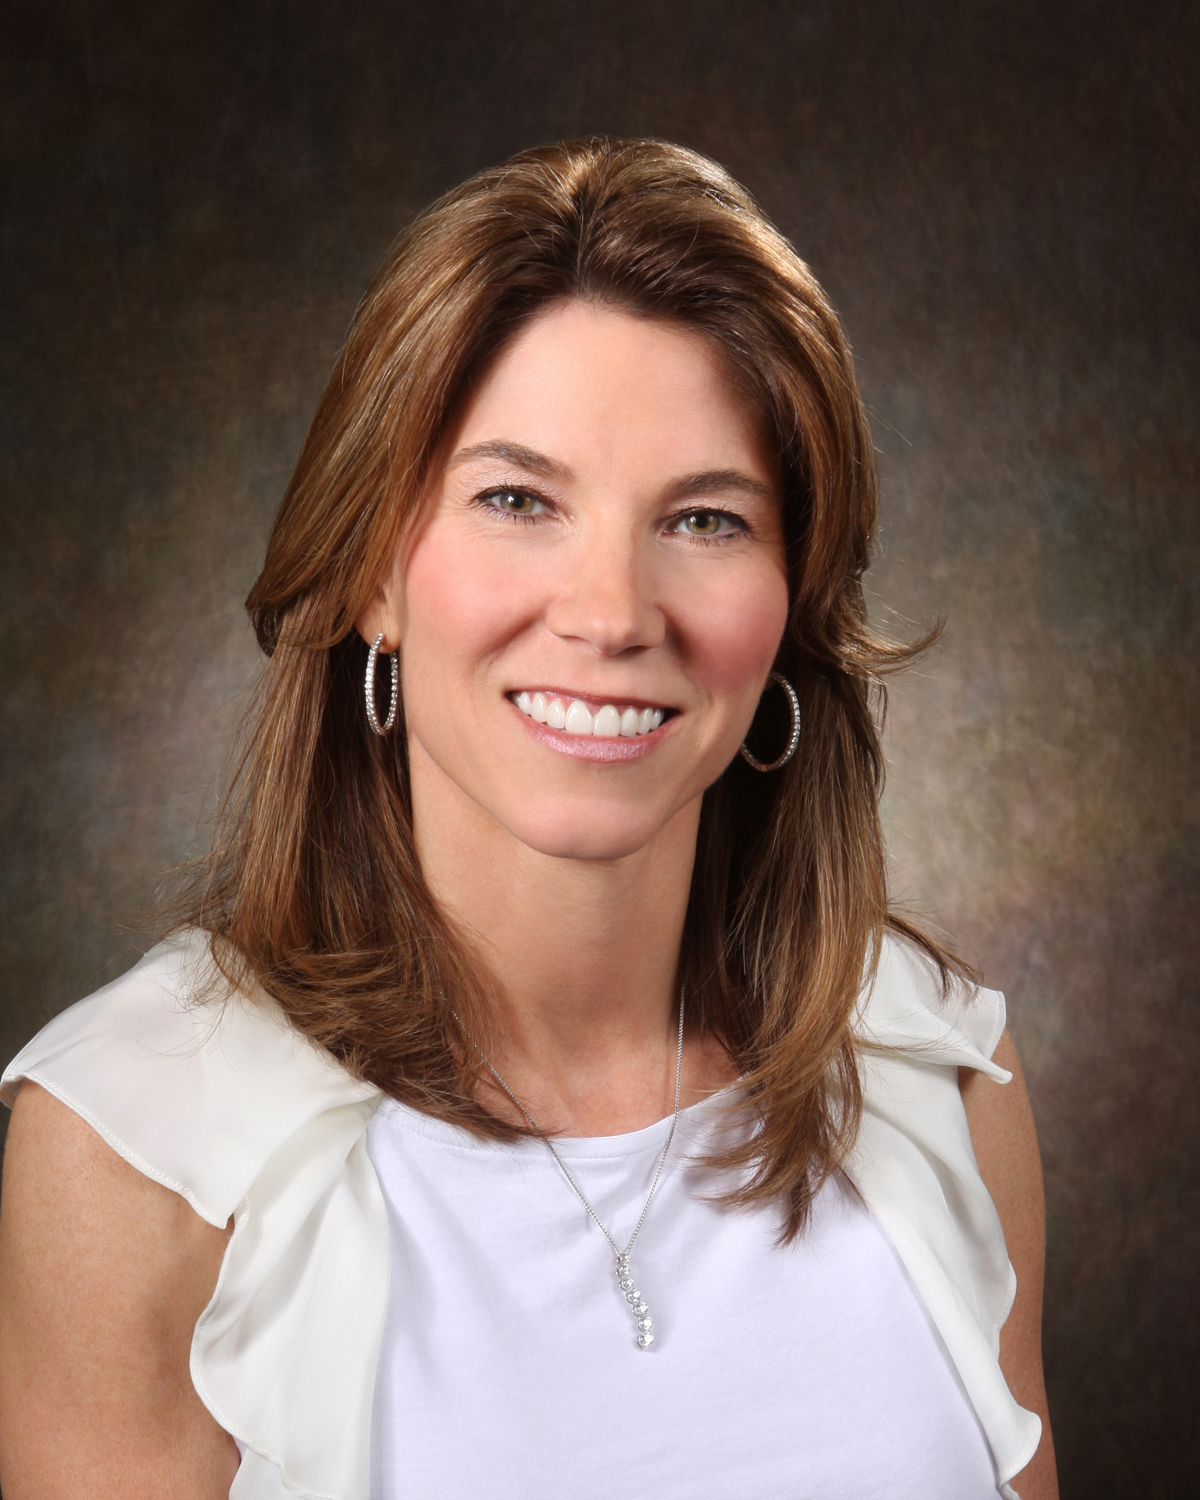 Dr. Shelley Ray, MD